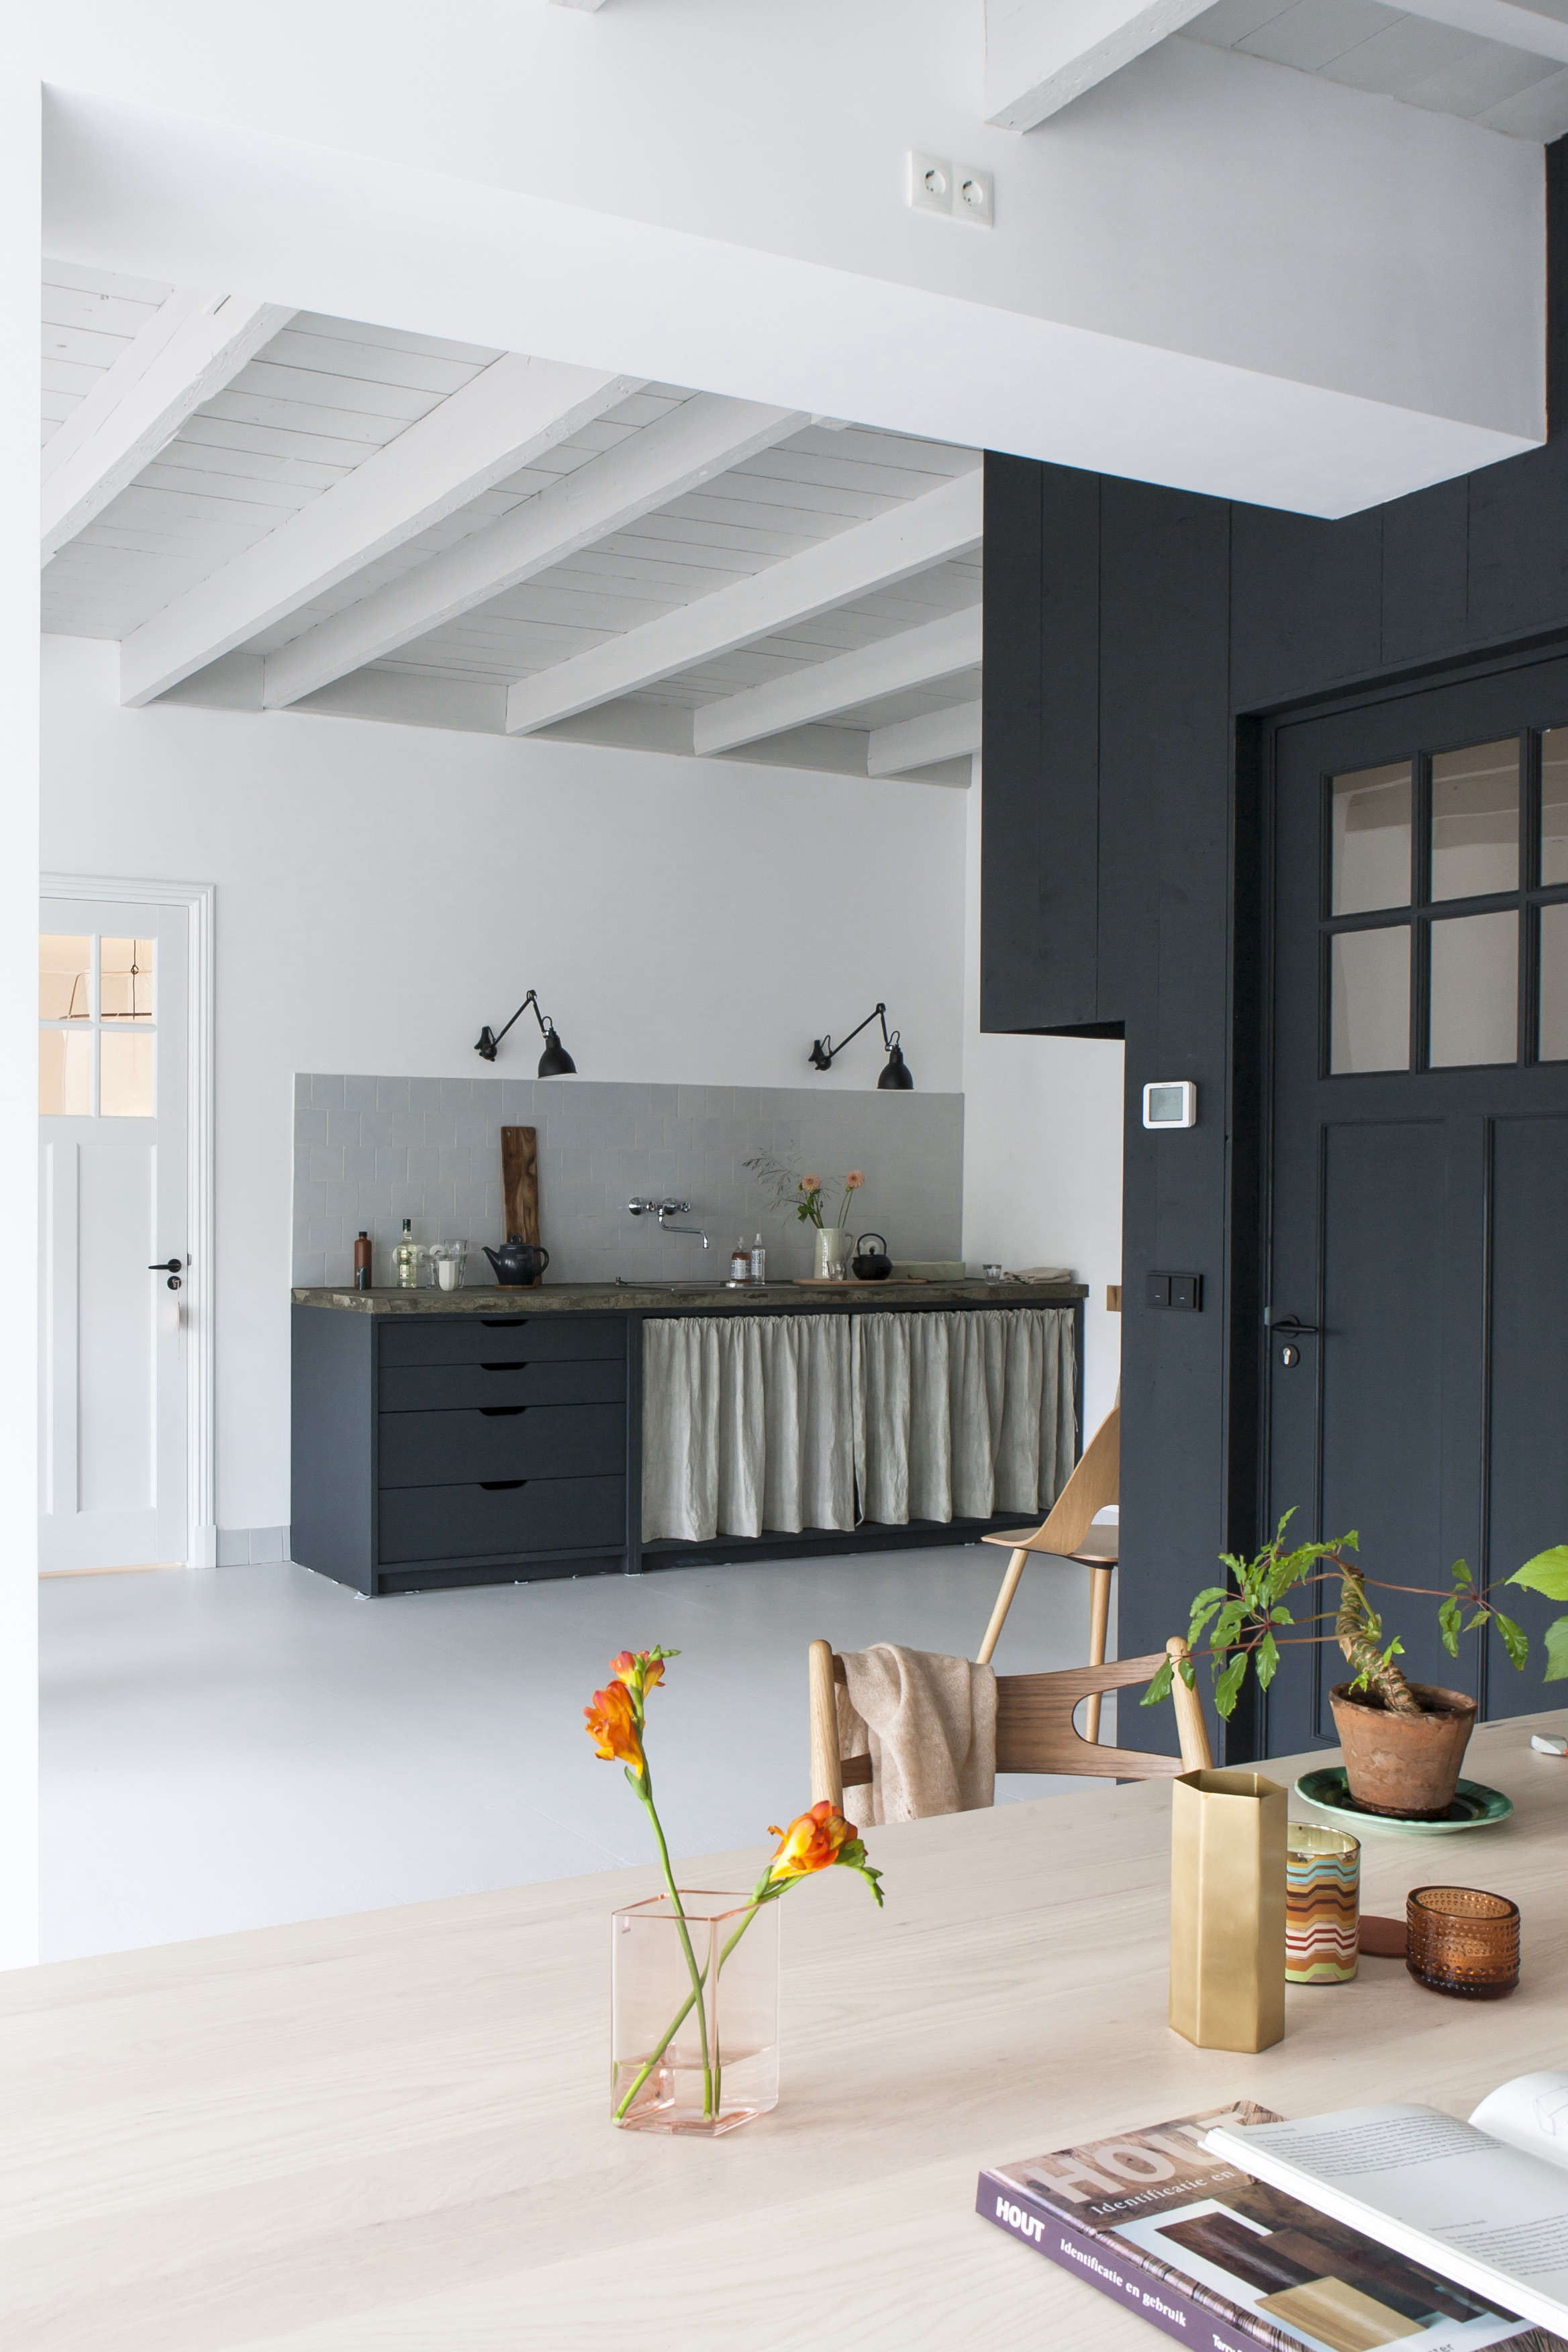 The kitchen is located in a section of the Jan de Jong three-story complex that for decades was used as living quarters by various family members. In need of an update, it was stripped down to the beams and reinvented by Starkenburg as Interieur-Plus&#8